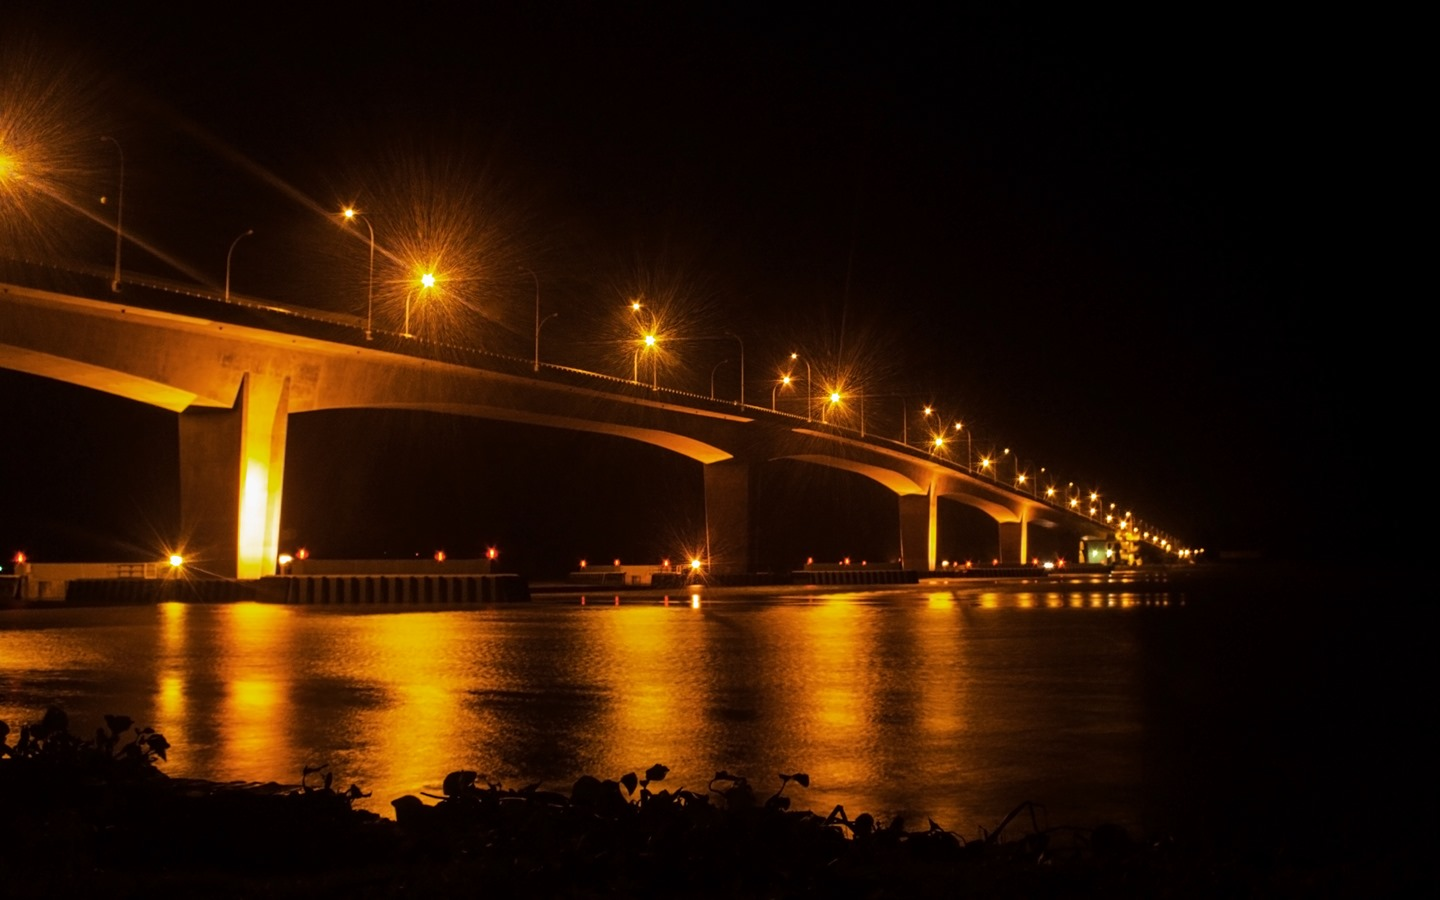 One of the most beauitufl bridges in Bangladesh